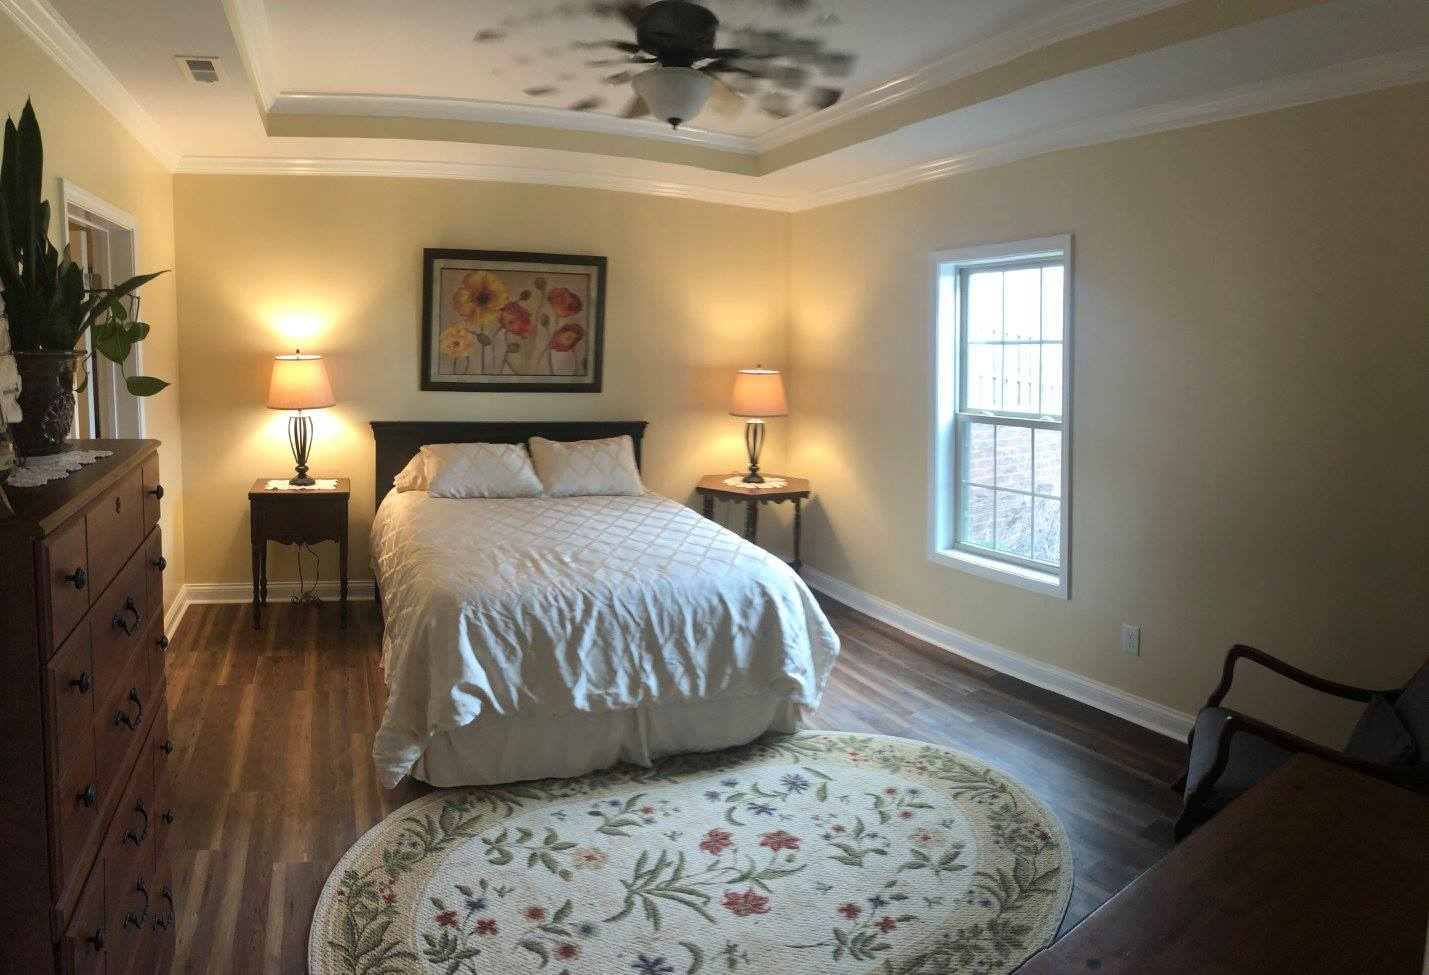 At Distinctive Design Remodeling we are committed to meeting and exceeding your master bedroom addition expectations.